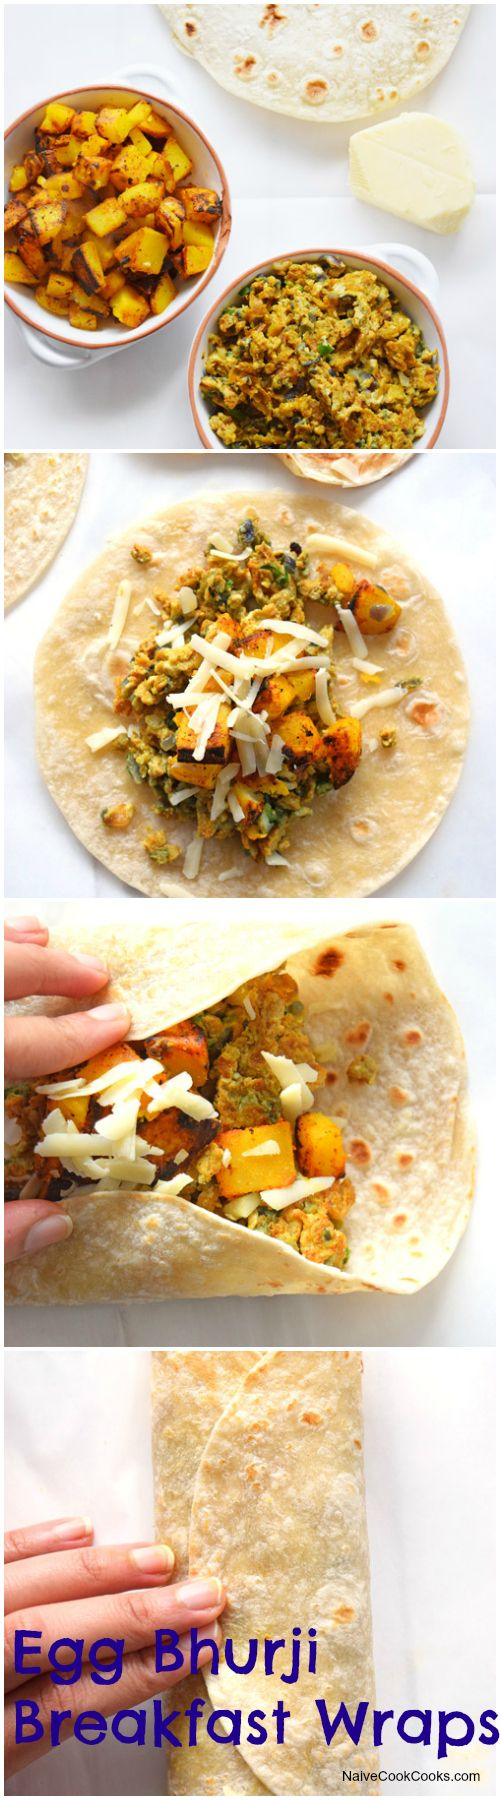 Breakfast wraps with Indian style scrambled eggs, potatoes & cheese.